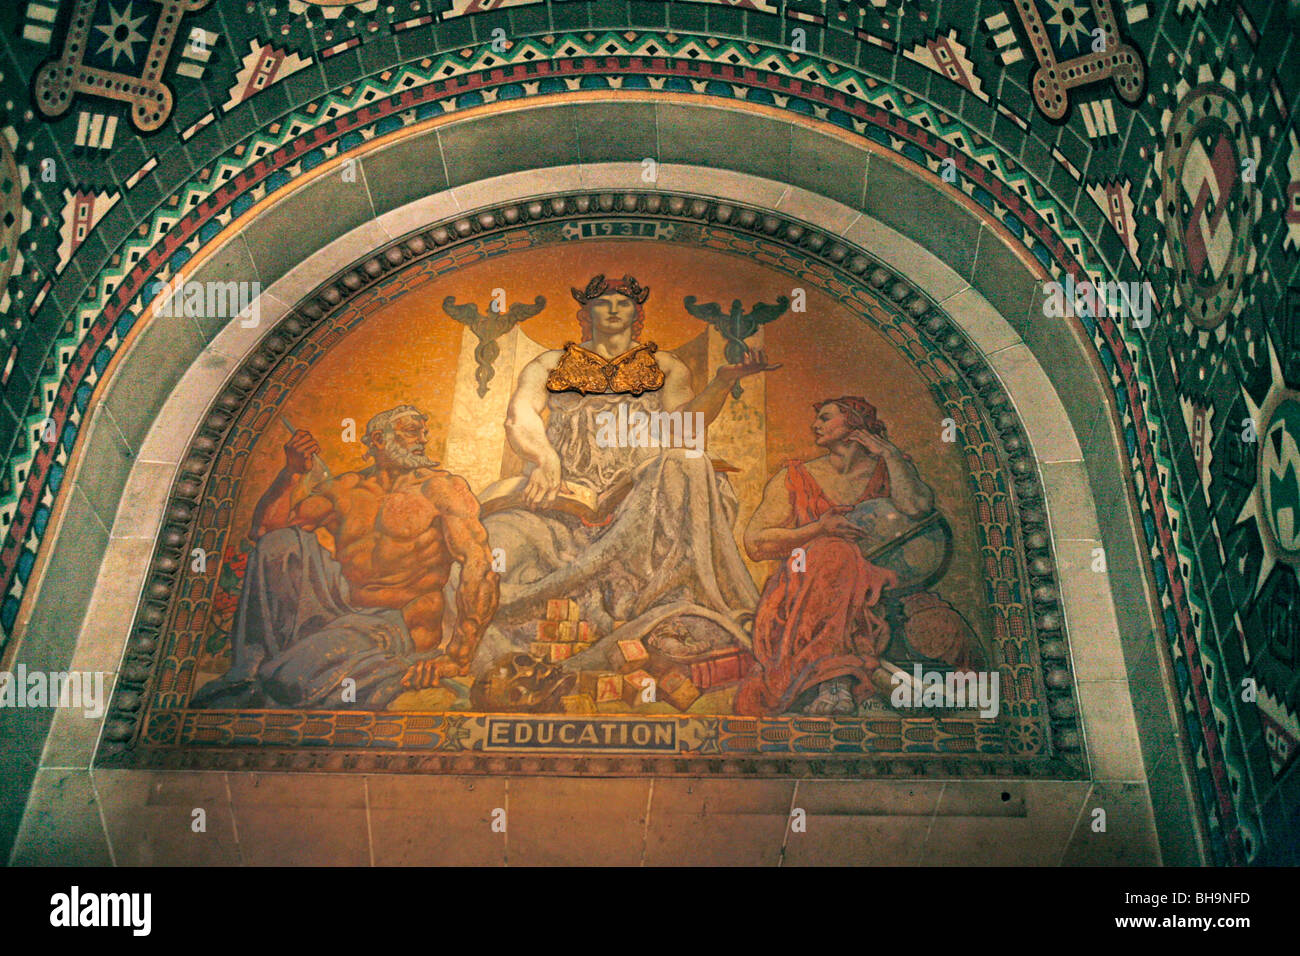 Buffalo new york city hall education mural stock photo for Education mural